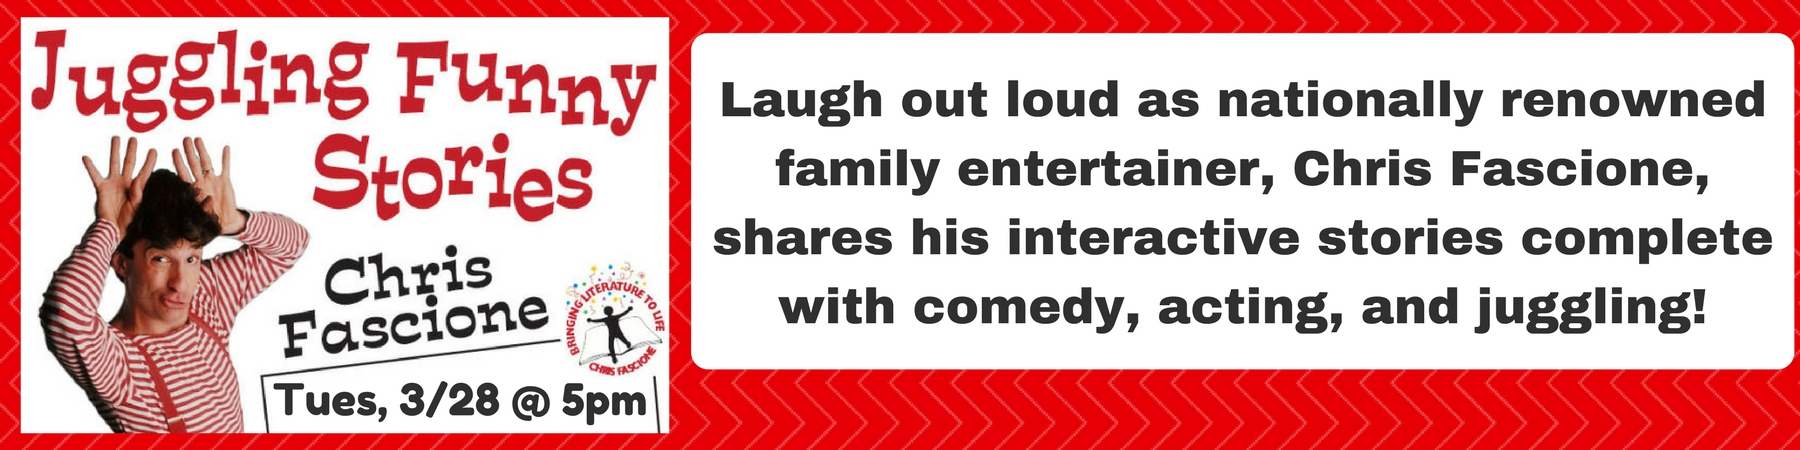 Laugh-out-loud-as-nationally-reknowned-family-entertainer-Christ-Fascione-shares-his-interactive-stories-complete-with-comedy-acting-and-juggling